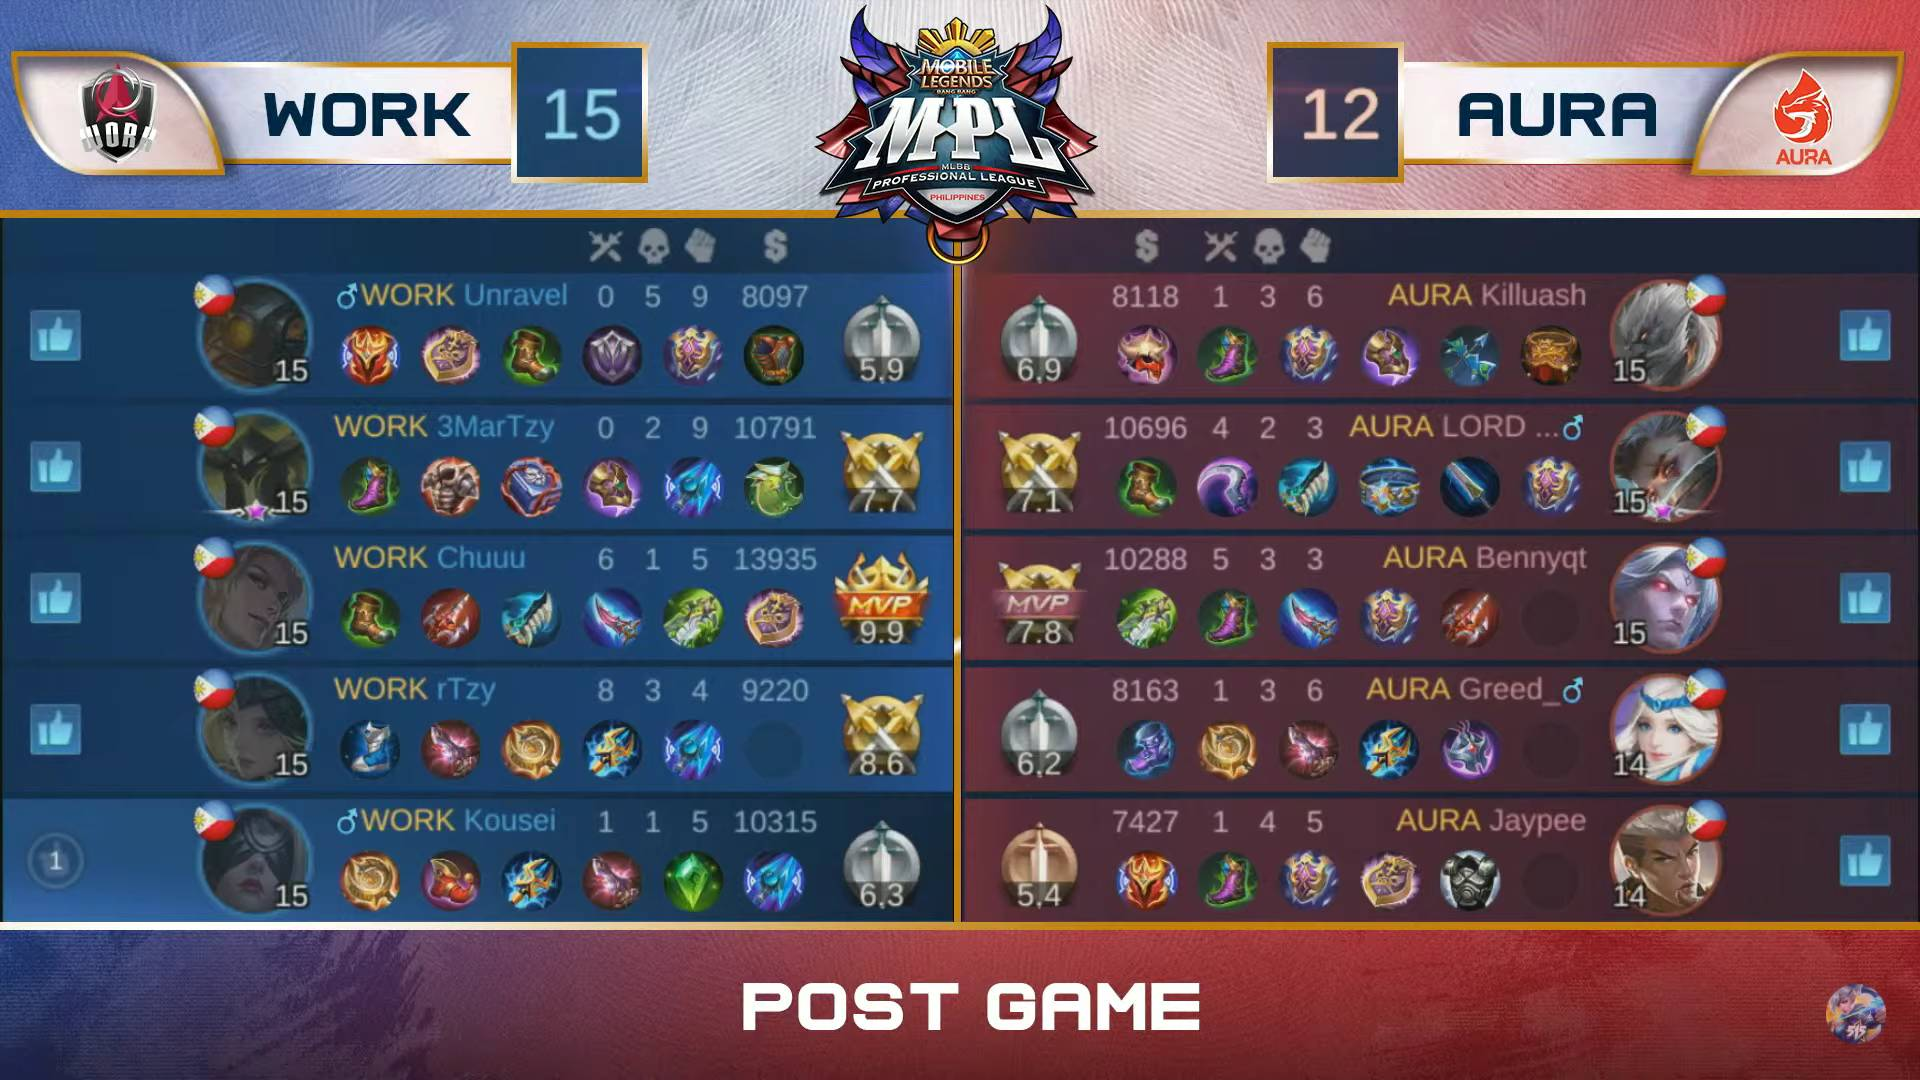 MPL-PH-Season-7-Work-Auster-def-Aura-Game-Two Work Auster exacts vengeance on Aura PH in MPL-PH ESports Mobile Legends MPL-PH  - philippine sports news